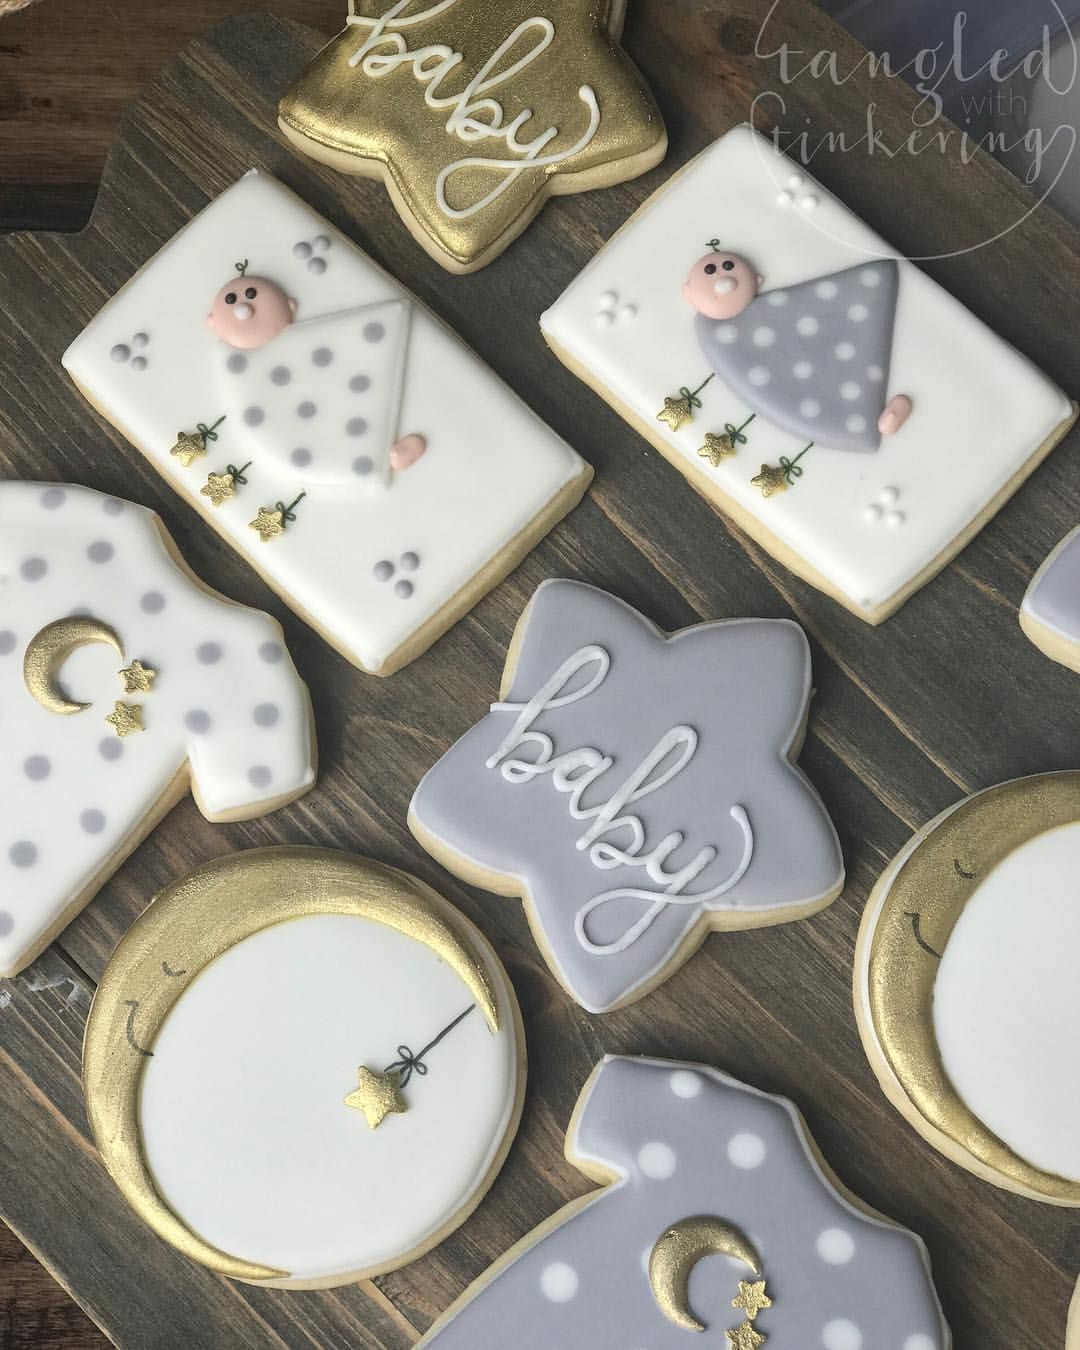 Pin By Cami Butterworth On Cookies: Baby Twinkle Twinkle